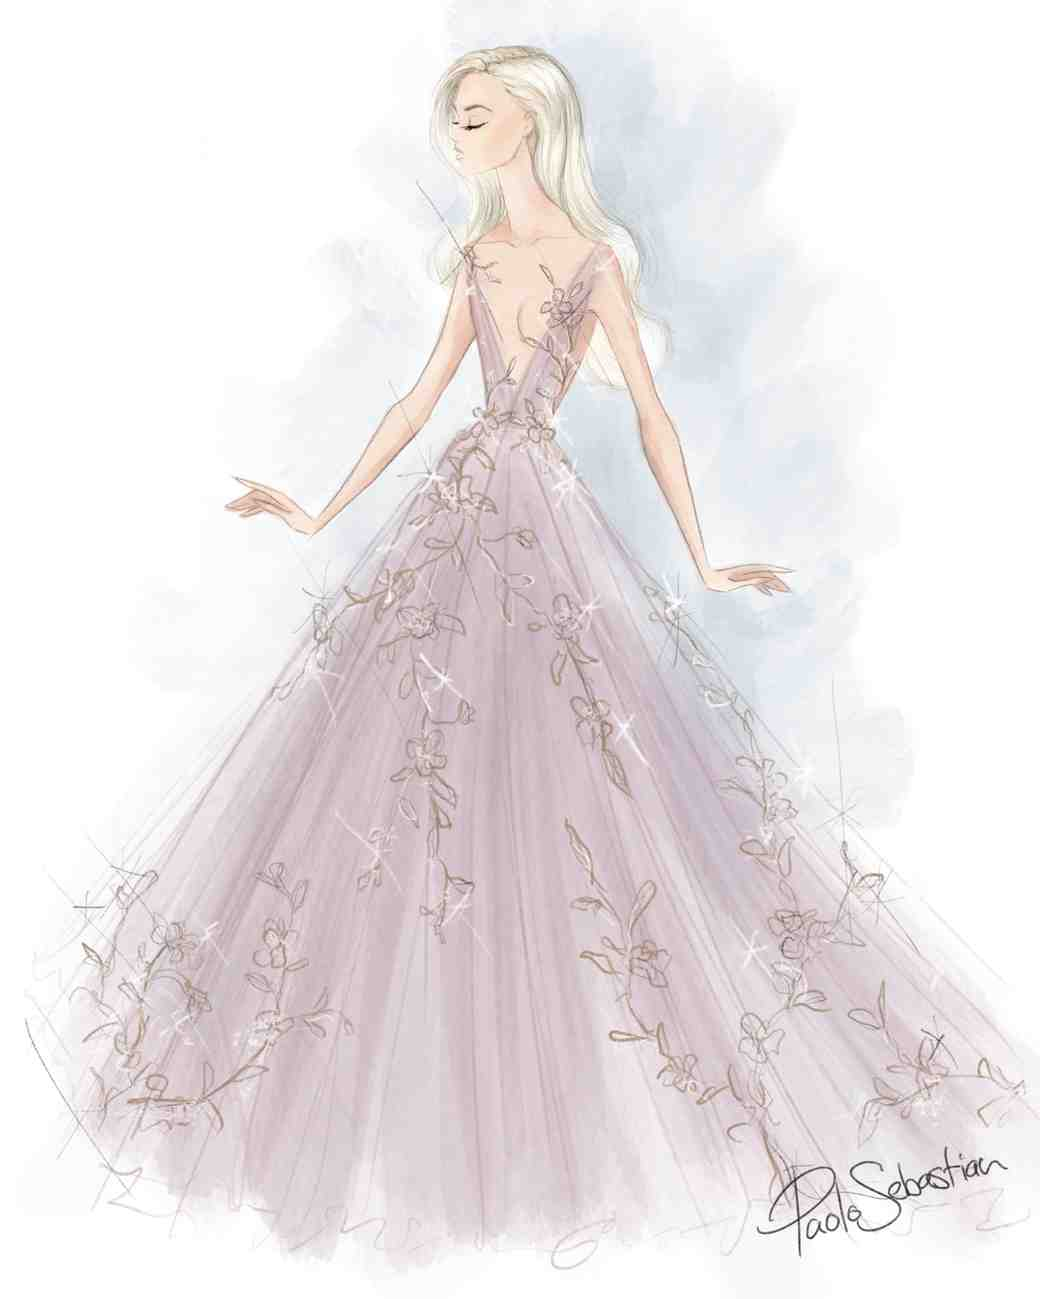 paolo sebastian wedding dress sketch